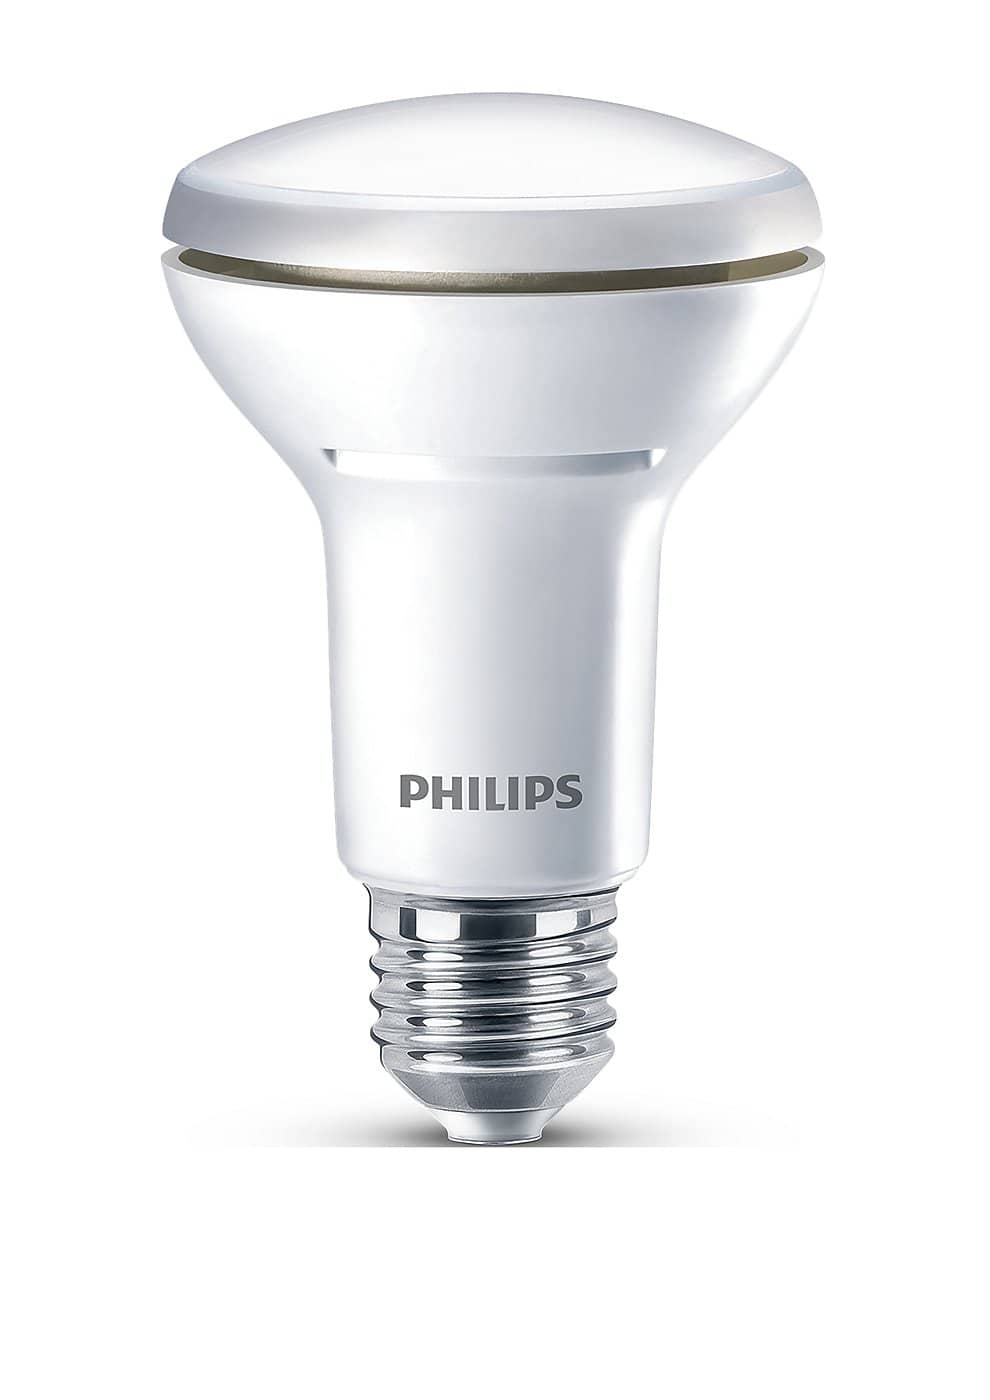 philips led strahler par20 e27 dimmbar 5 7w 345lm warmweiss. Black Bedroom Furniture Sets. Home Design Ideas